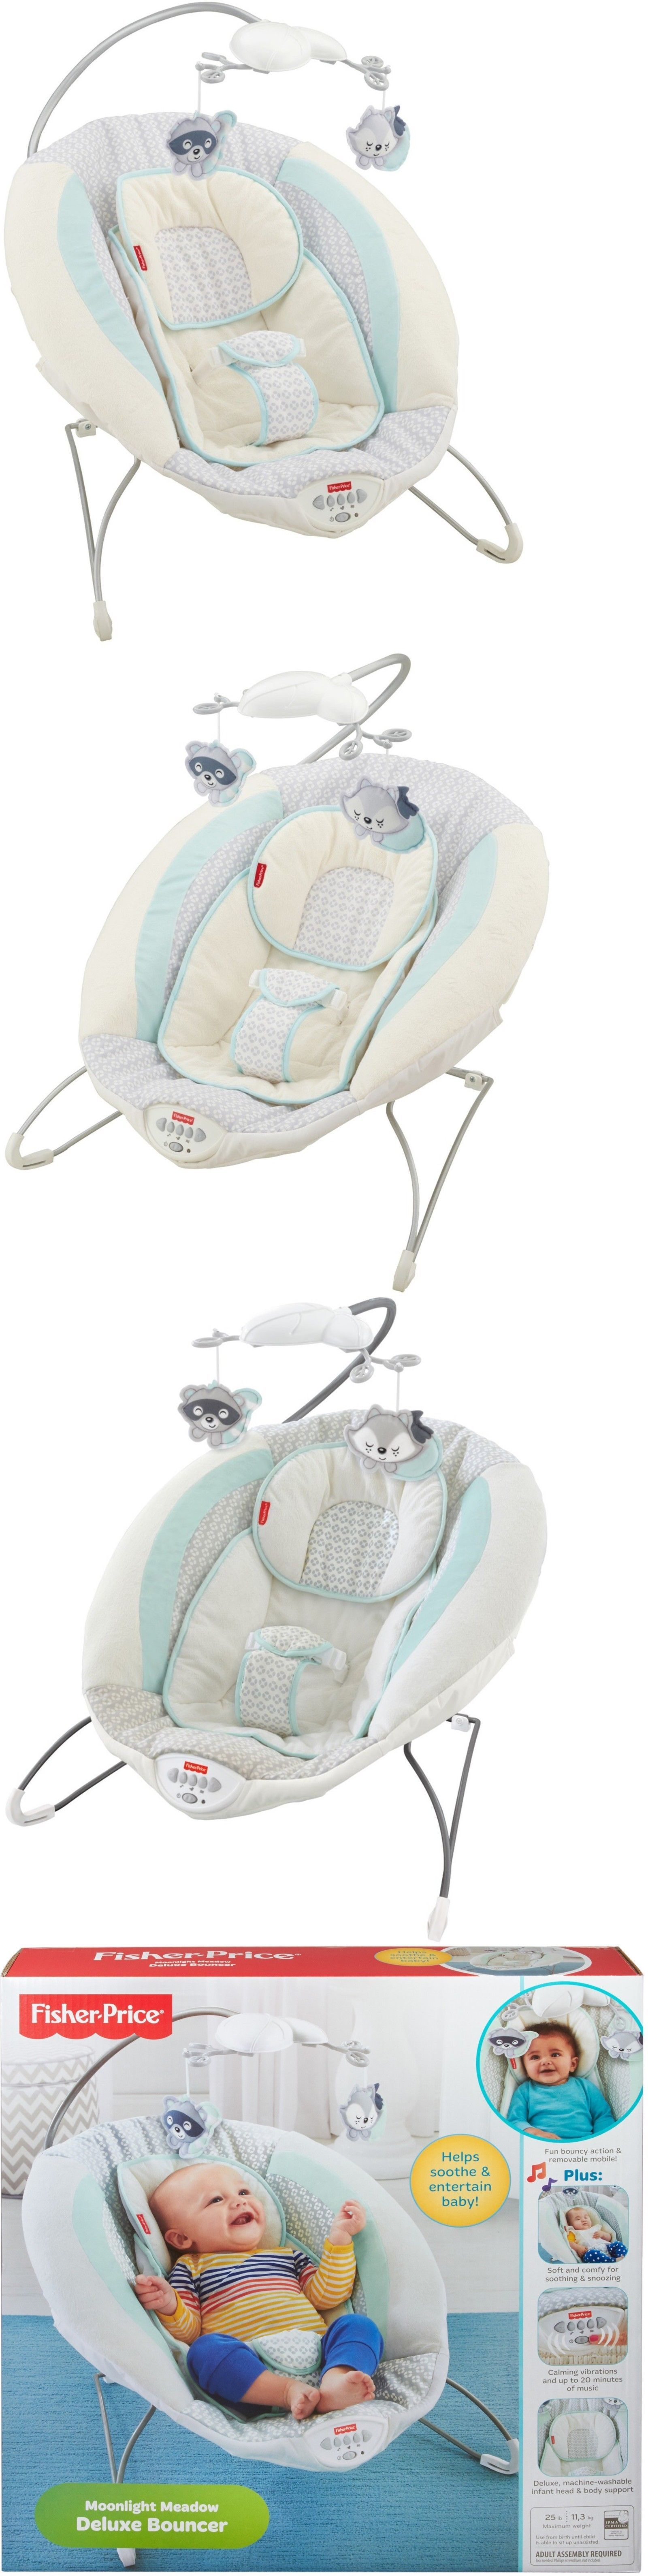 Bouncers and Vibrating Chairs Openbox Fisher Price Moonlight